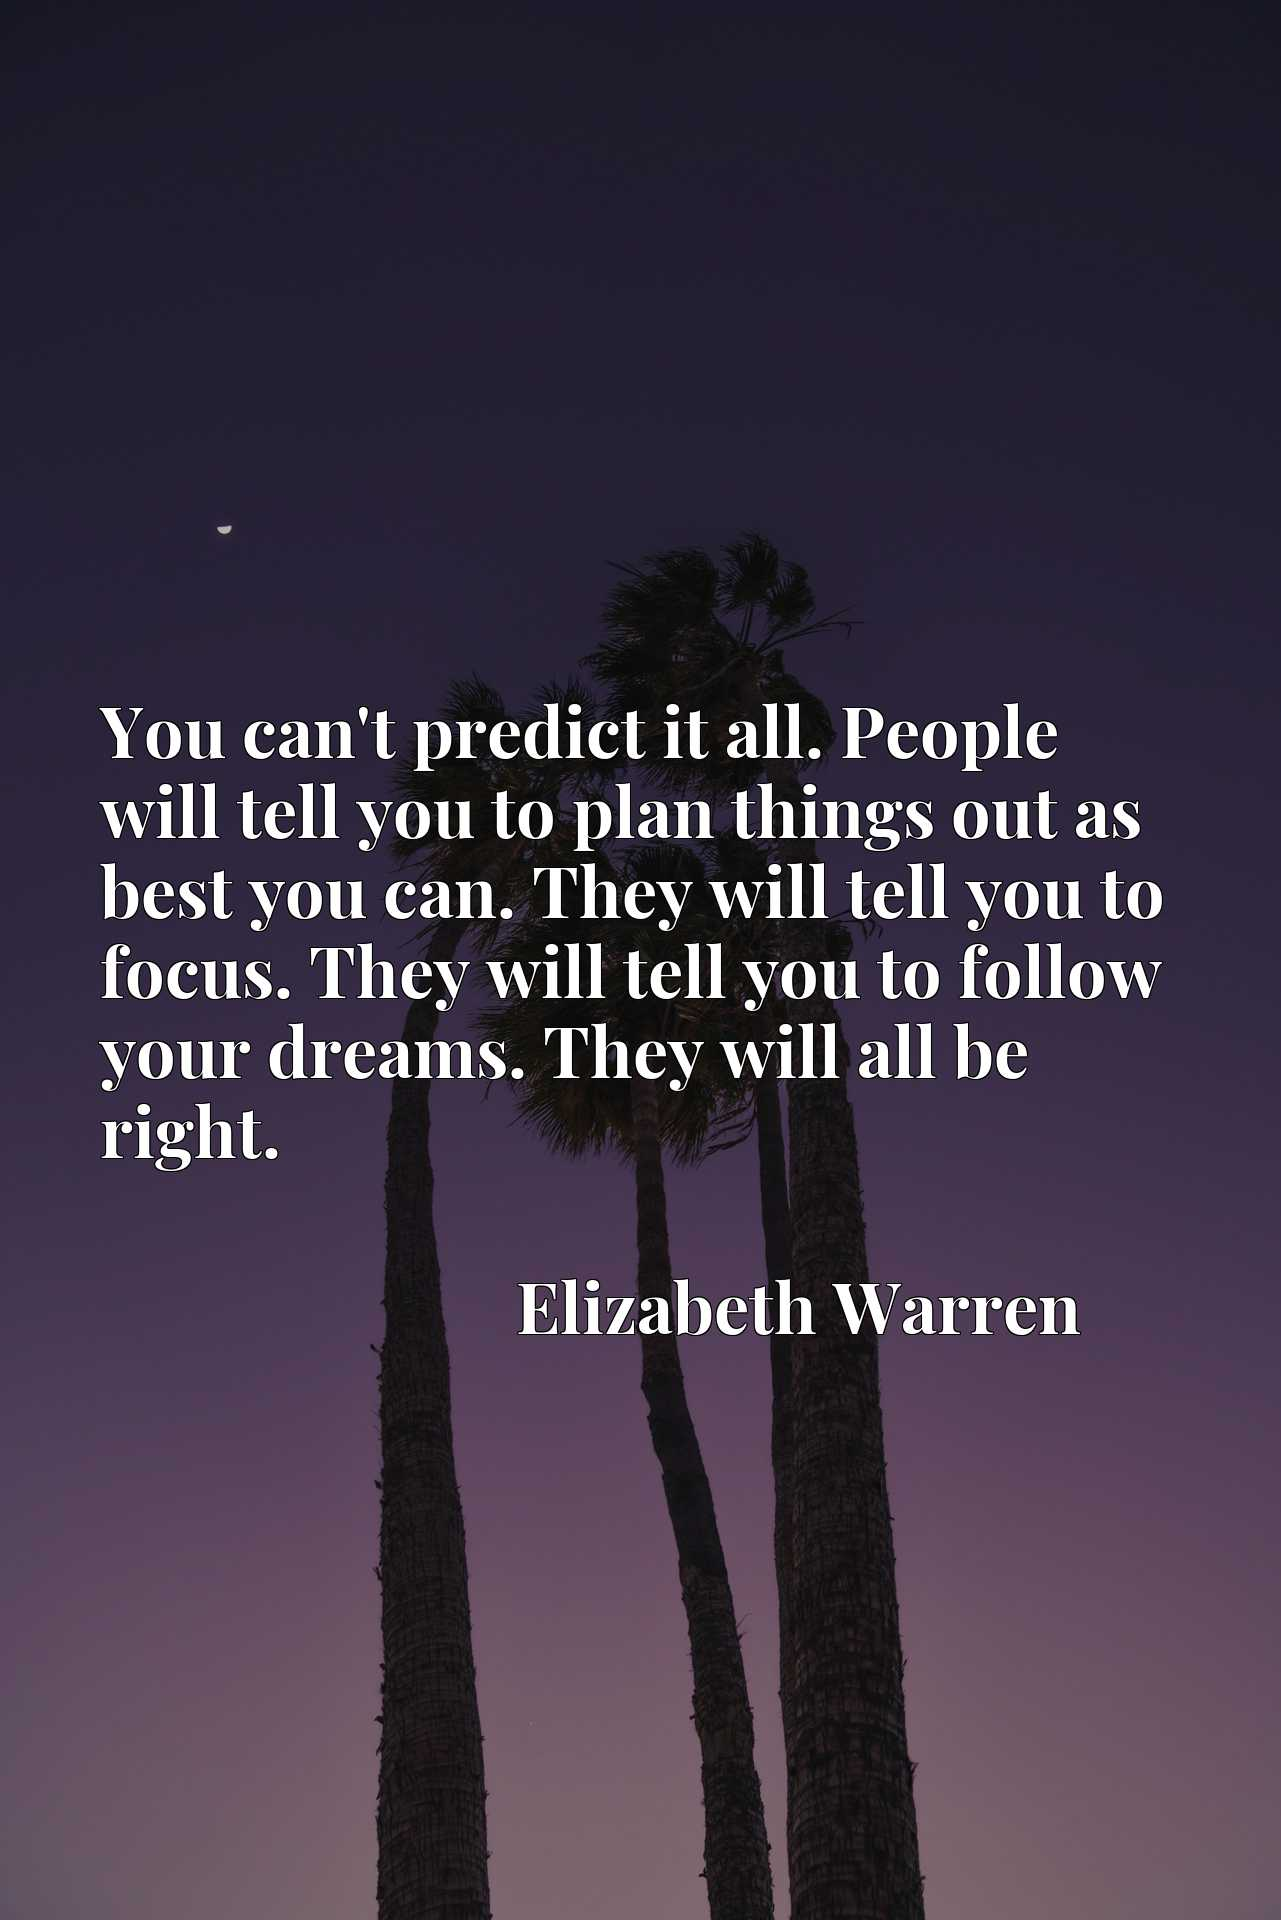 You can't predict it all. People will tell you to plan things out as best you can. They will tell you to focus. They will tell you to follow your dreams. They will all be right.